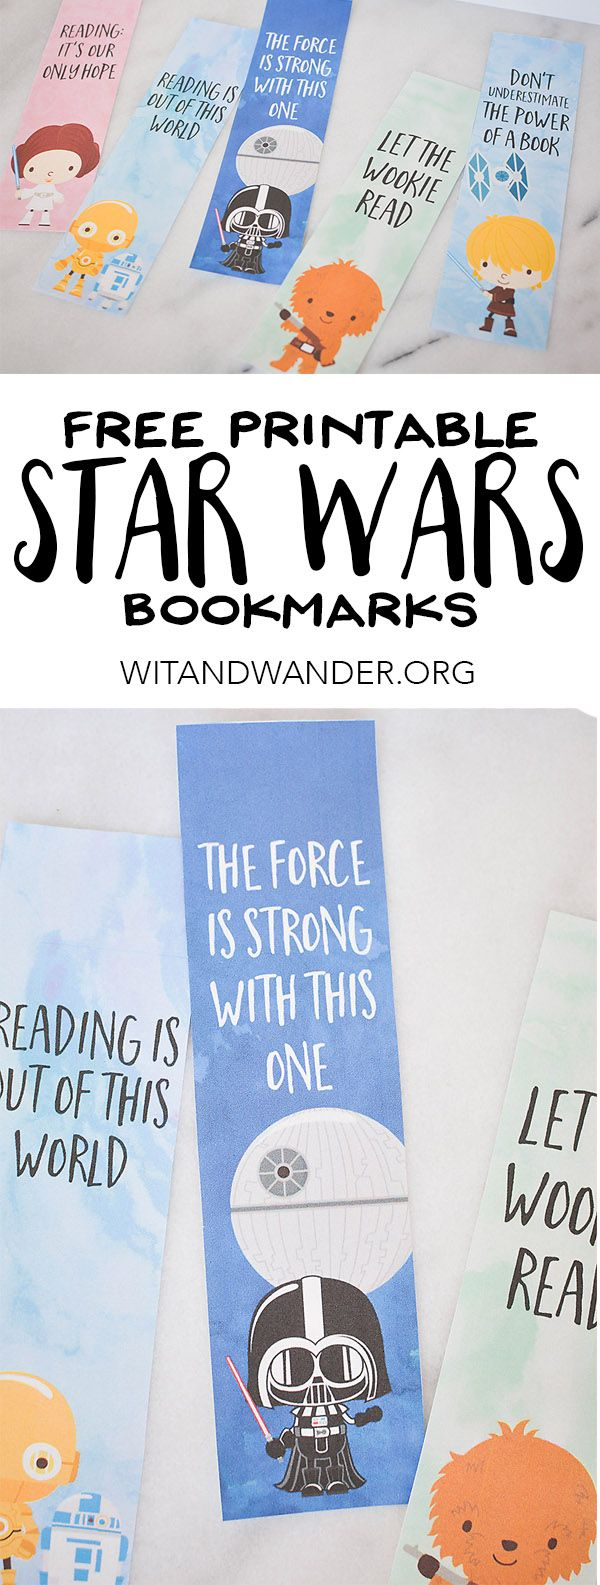 Free printable santa wish list coloring page tickled peach studio - Free Printable Star Wars Bookmarks Wit Wander